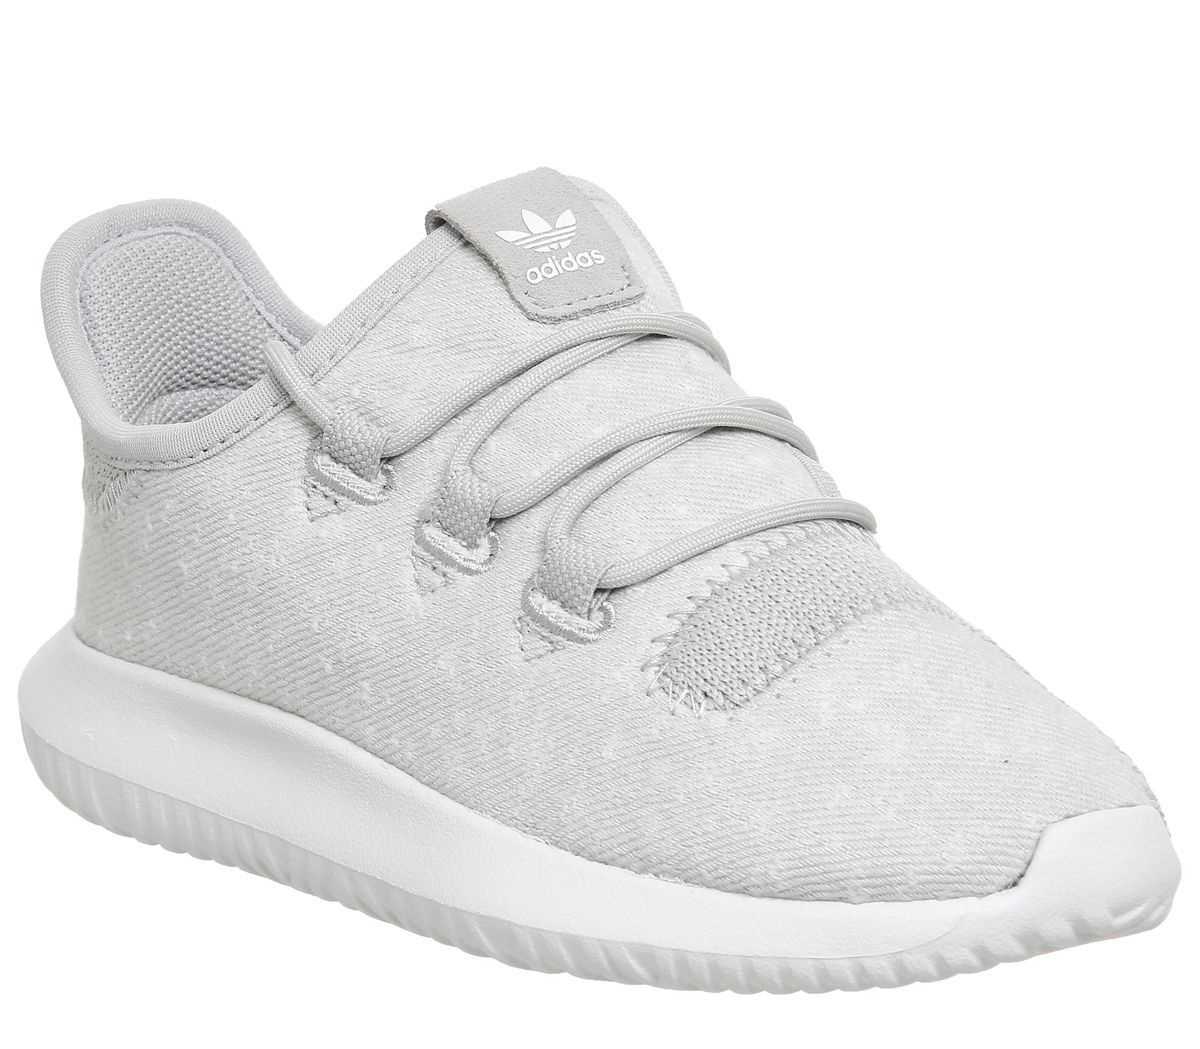 b3c1dbeb6c0 Tubular Shadow Kids